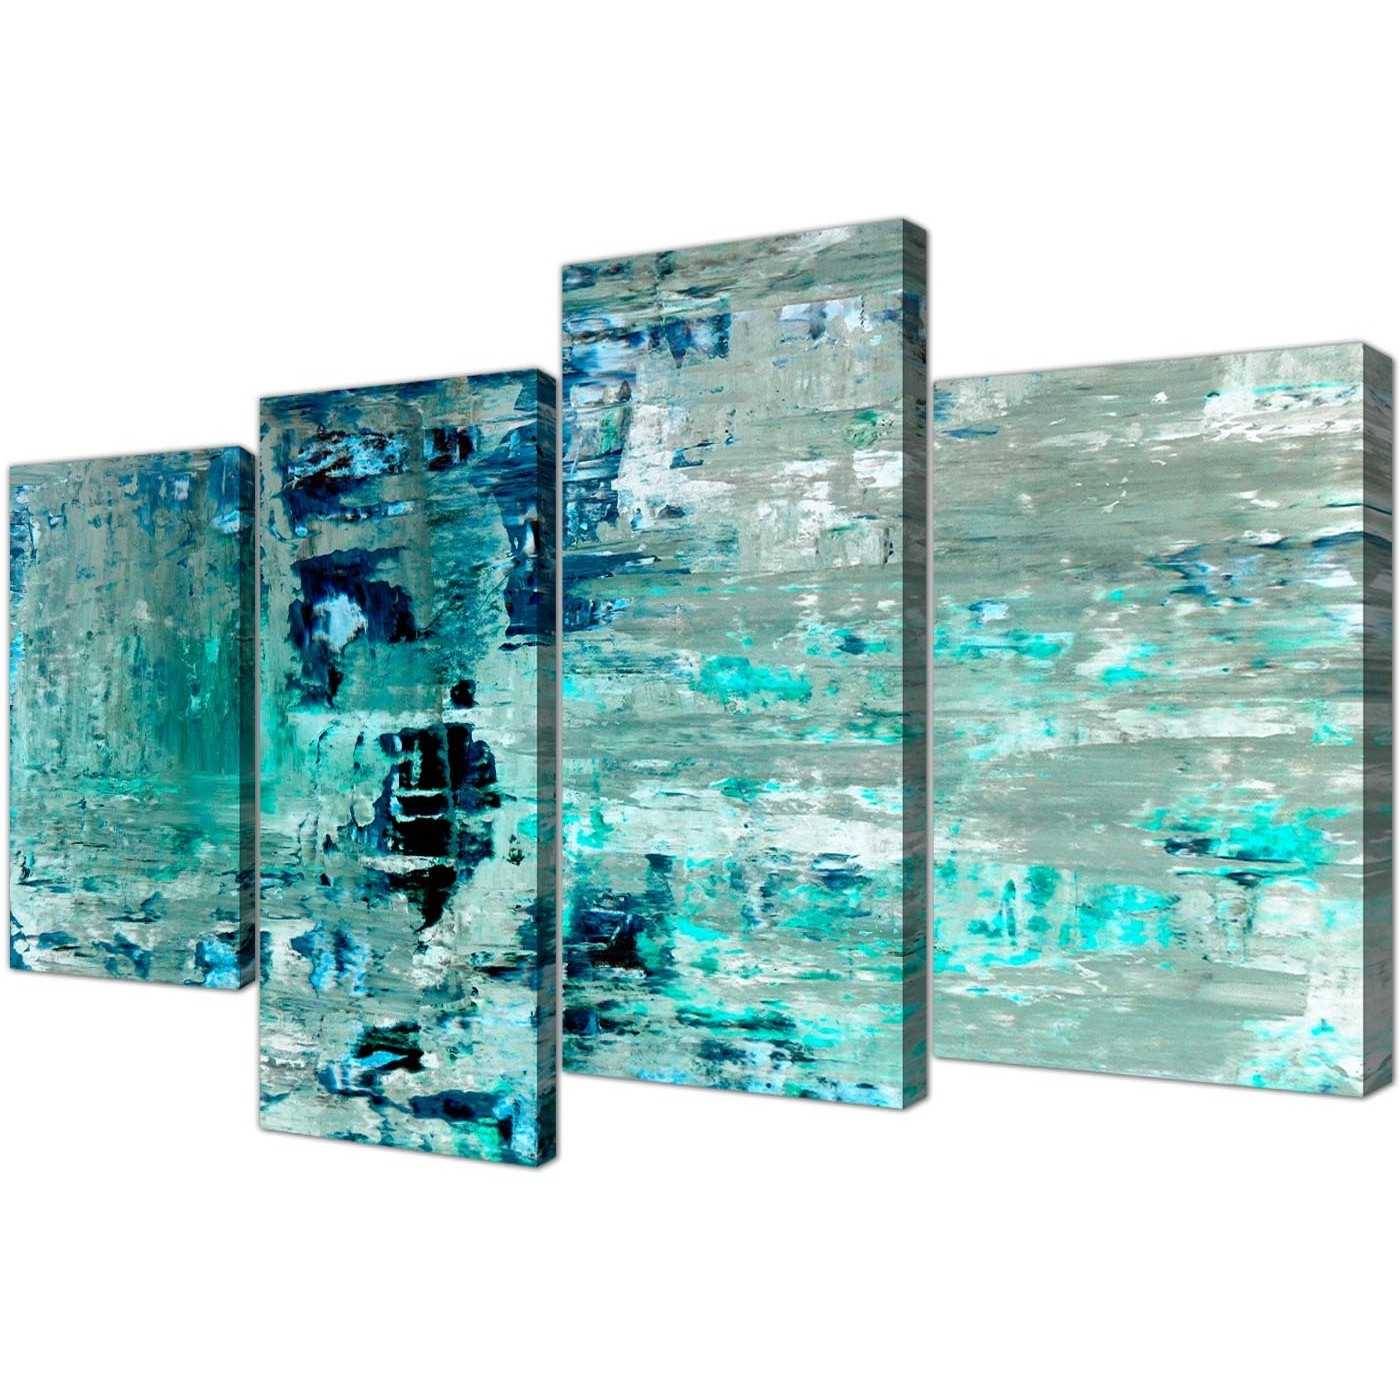 Fashionable Teal Wall Art With Regard To Large Turquoise Teal Abstract Painting Wall Art Print Canvas – Multi (View 7 of 15)